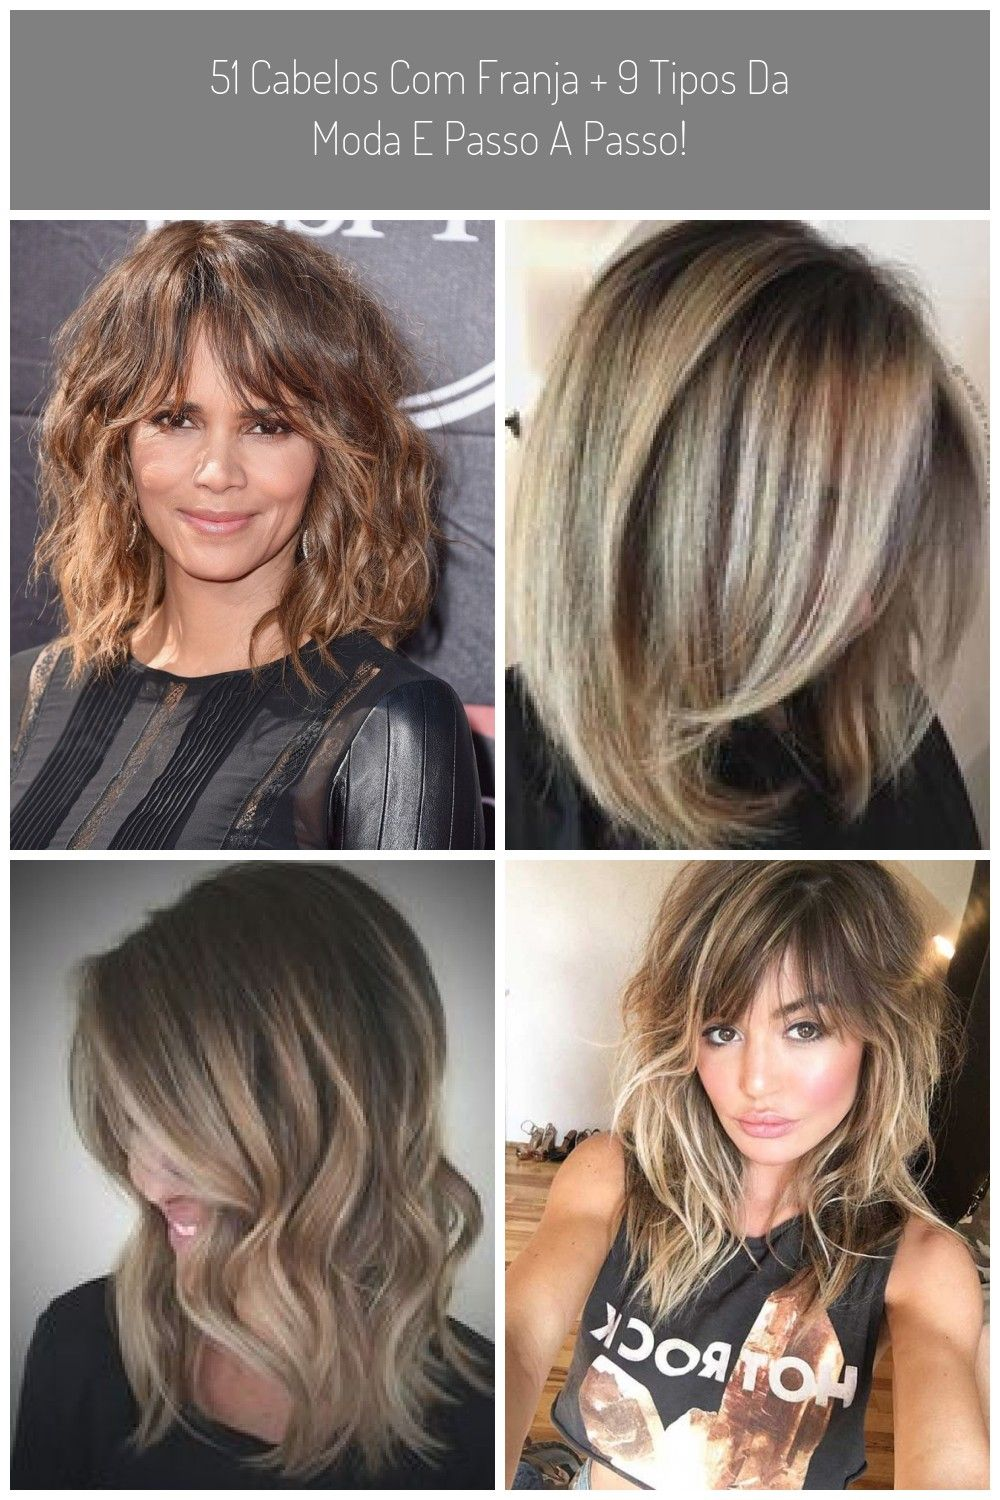 Frisuren Mittellang Stufig Mit Pony Blond Blond Frisuren Mit Mittellang Pony Stufig In 2020 Straight Blonde Hair Medium Length Hair Styles Straight Ombre Hair